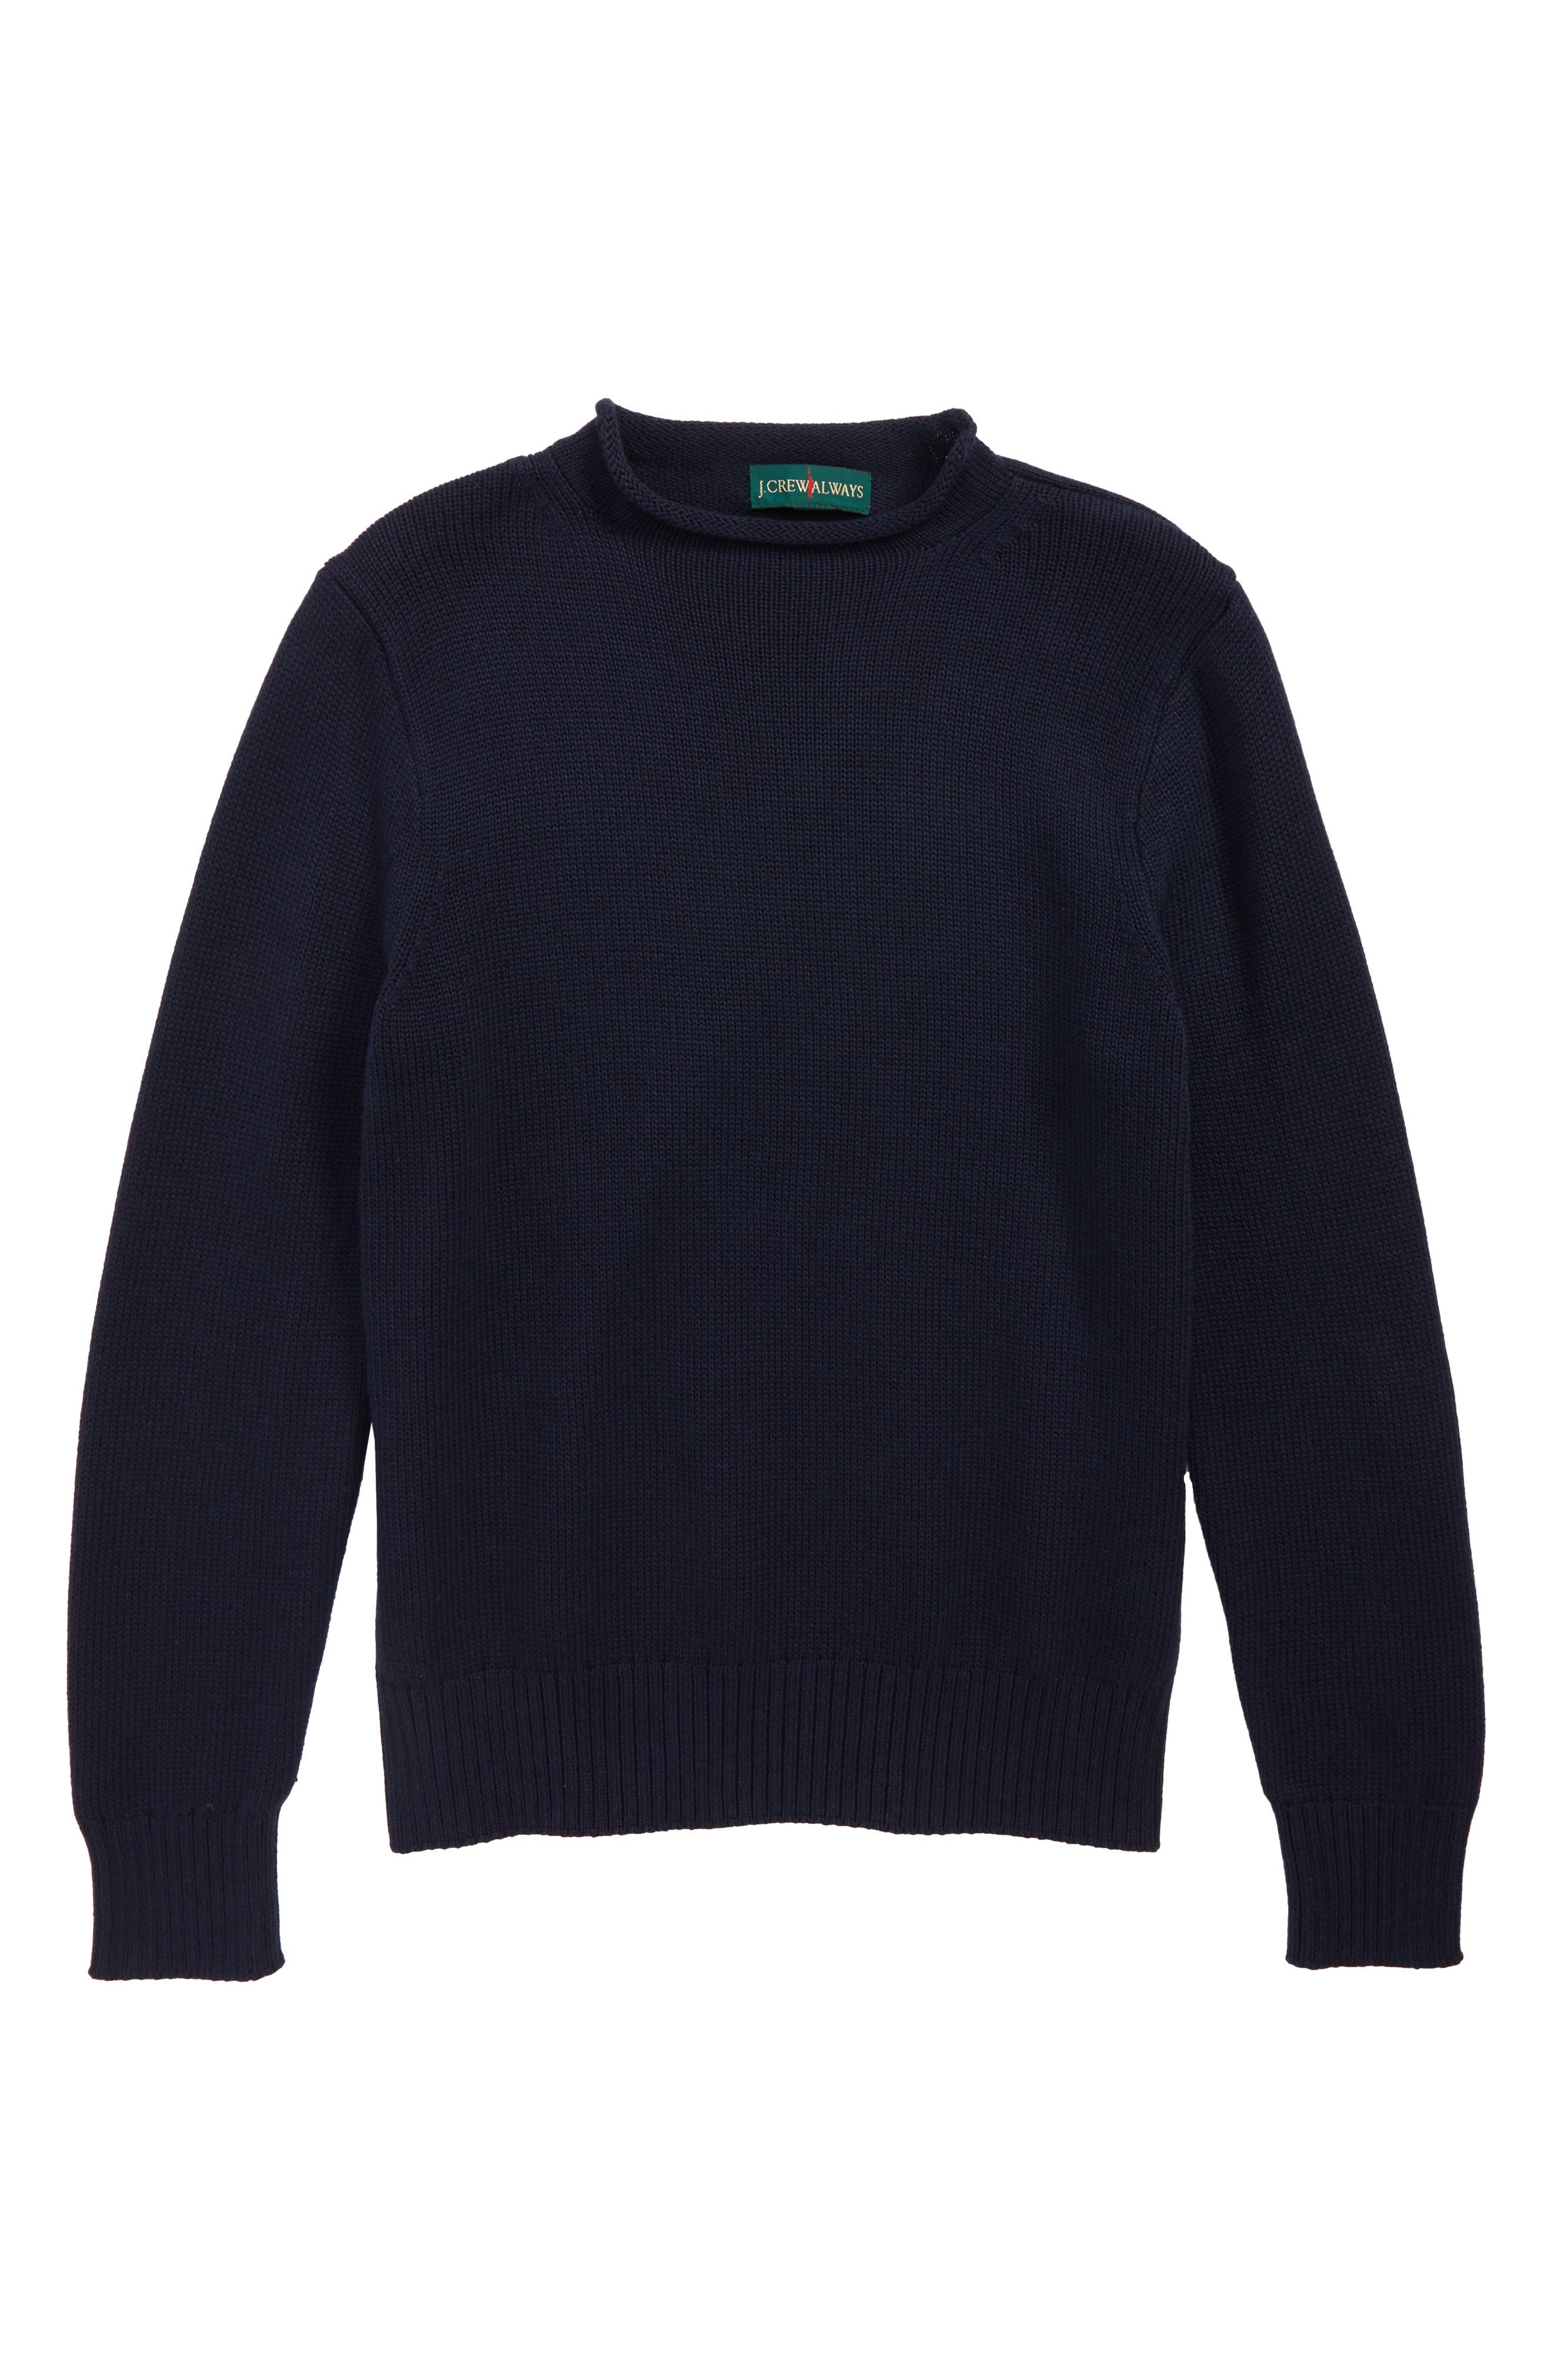 1998 Roll Neck Sweater,                         Main,                         color, NAVY